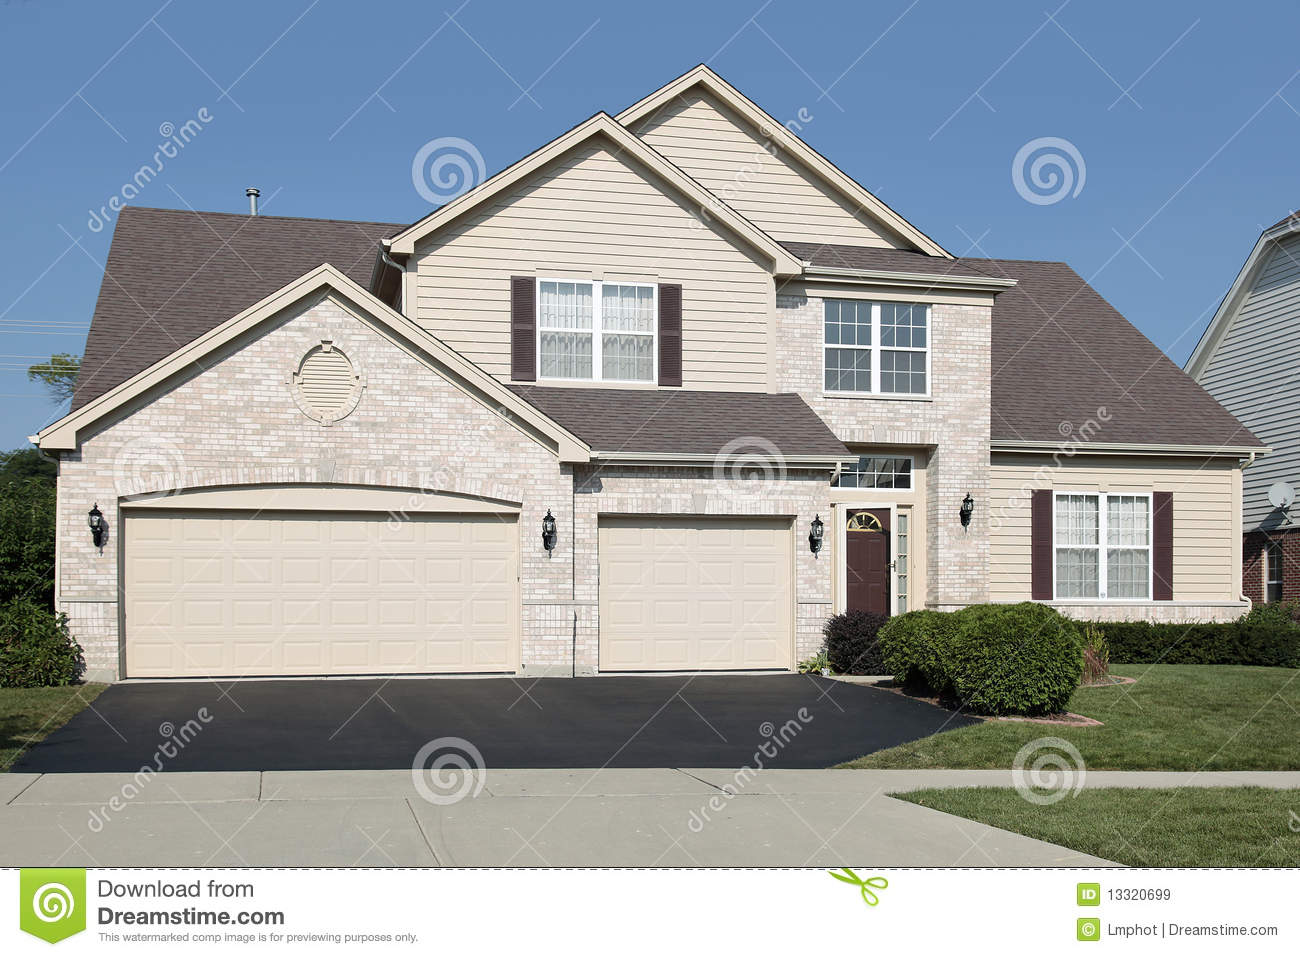 Home with three car garage royalty free stock images for 3 car garage homes